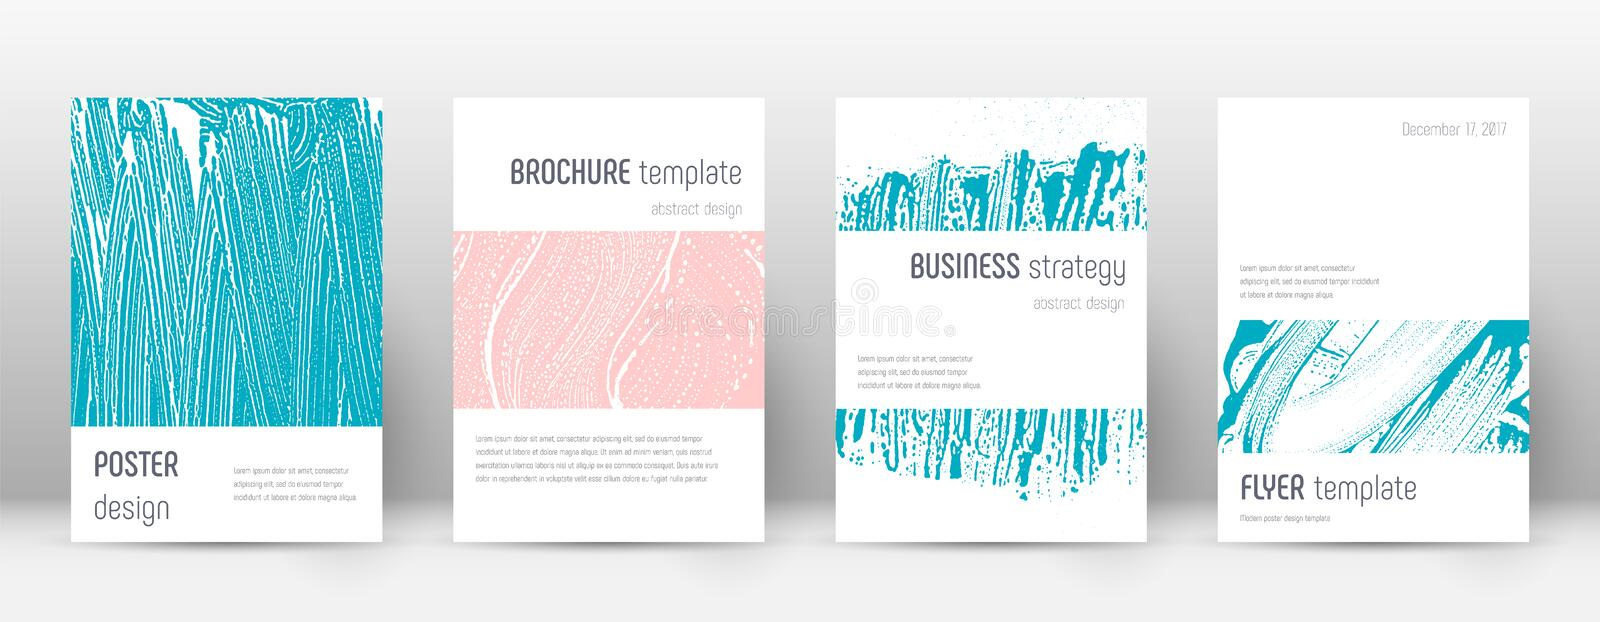 Cover page design template. Minimalistic brochure. Layout. Classy trendy abstract cover page. Pink and blue grunge texture background. Wonderful poster royalty free illustration